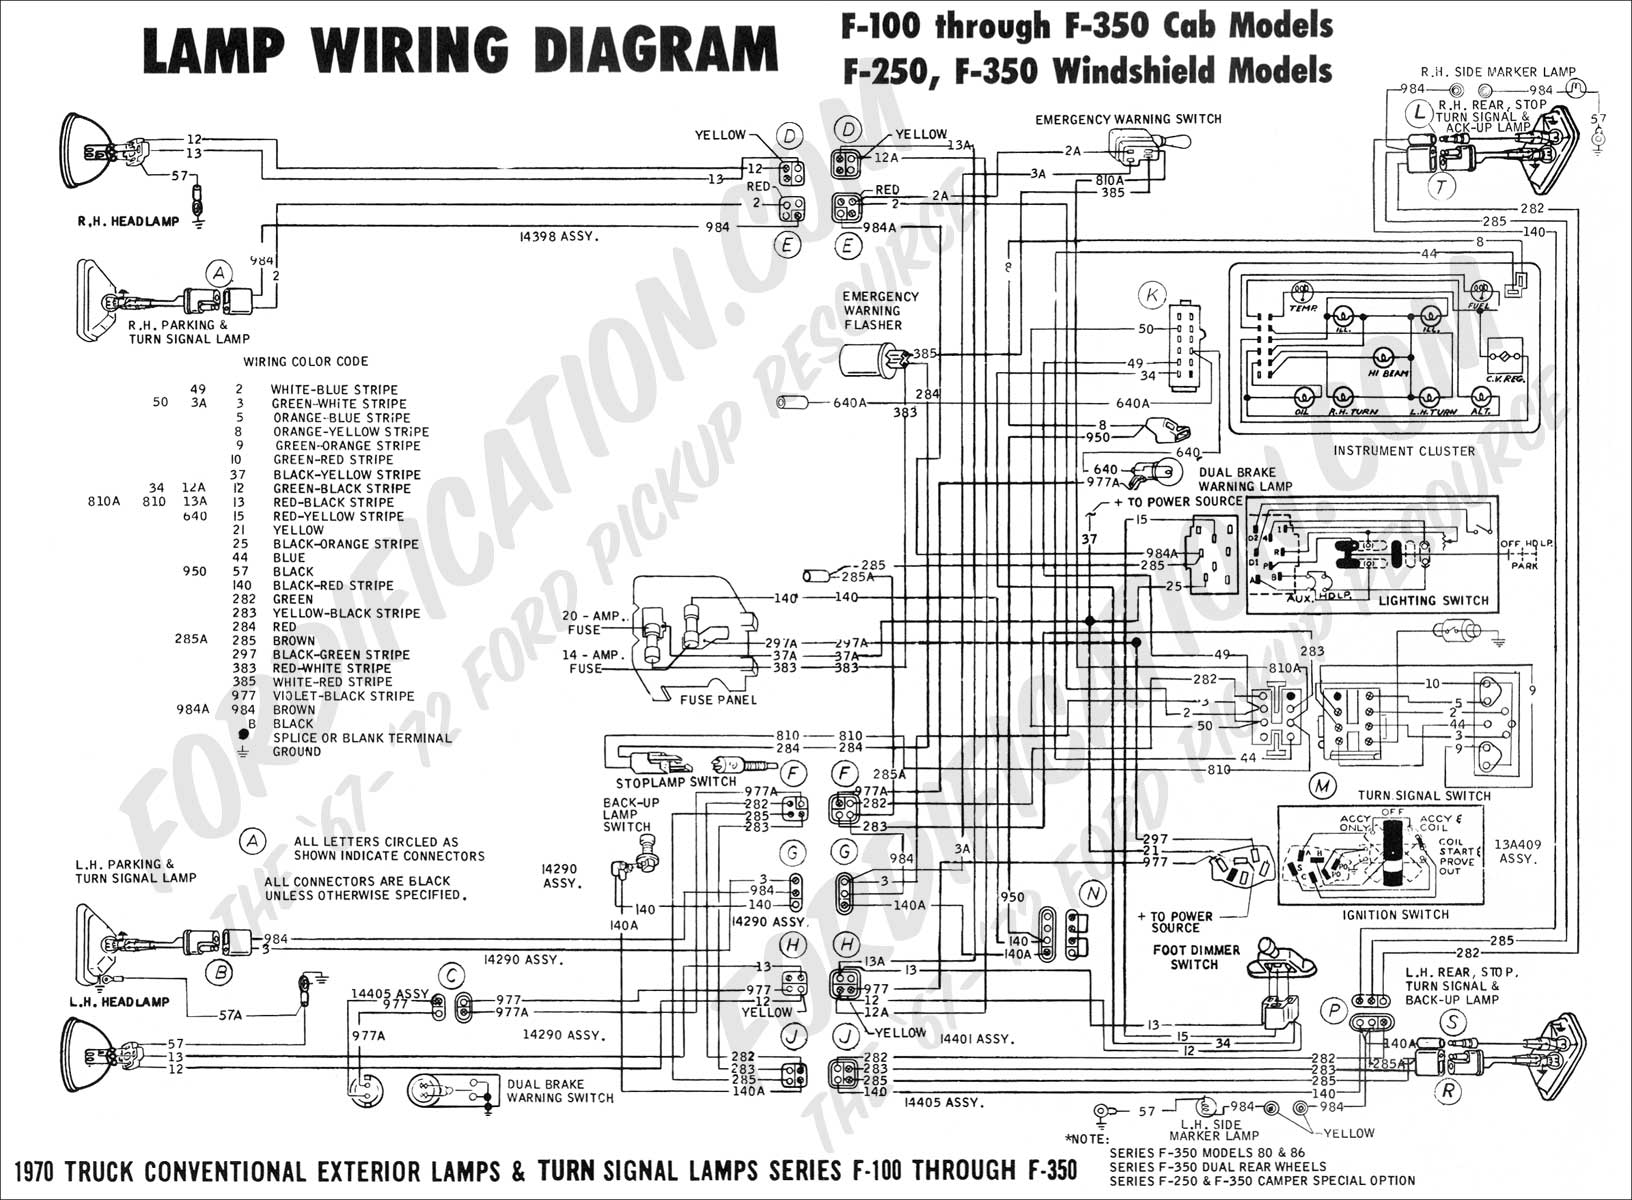 1987 Ford E250 Wiring Diagram Detailed Wiring Diagrams Ford Econoline E350  Fuse Diagram 1987 Ford E250 Wiring Diagram